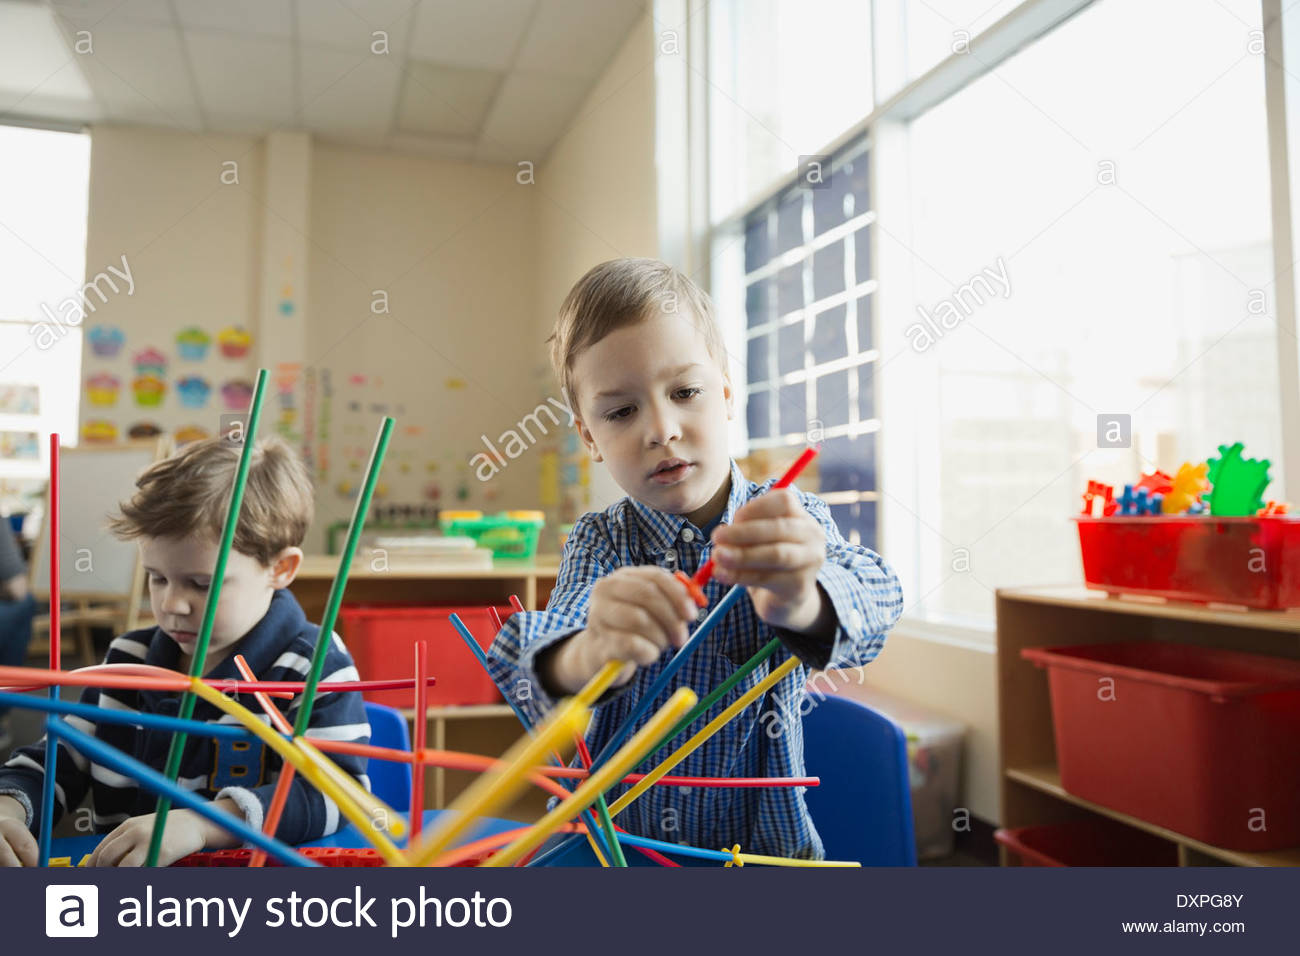 Children playing in elementary school - Stock Image